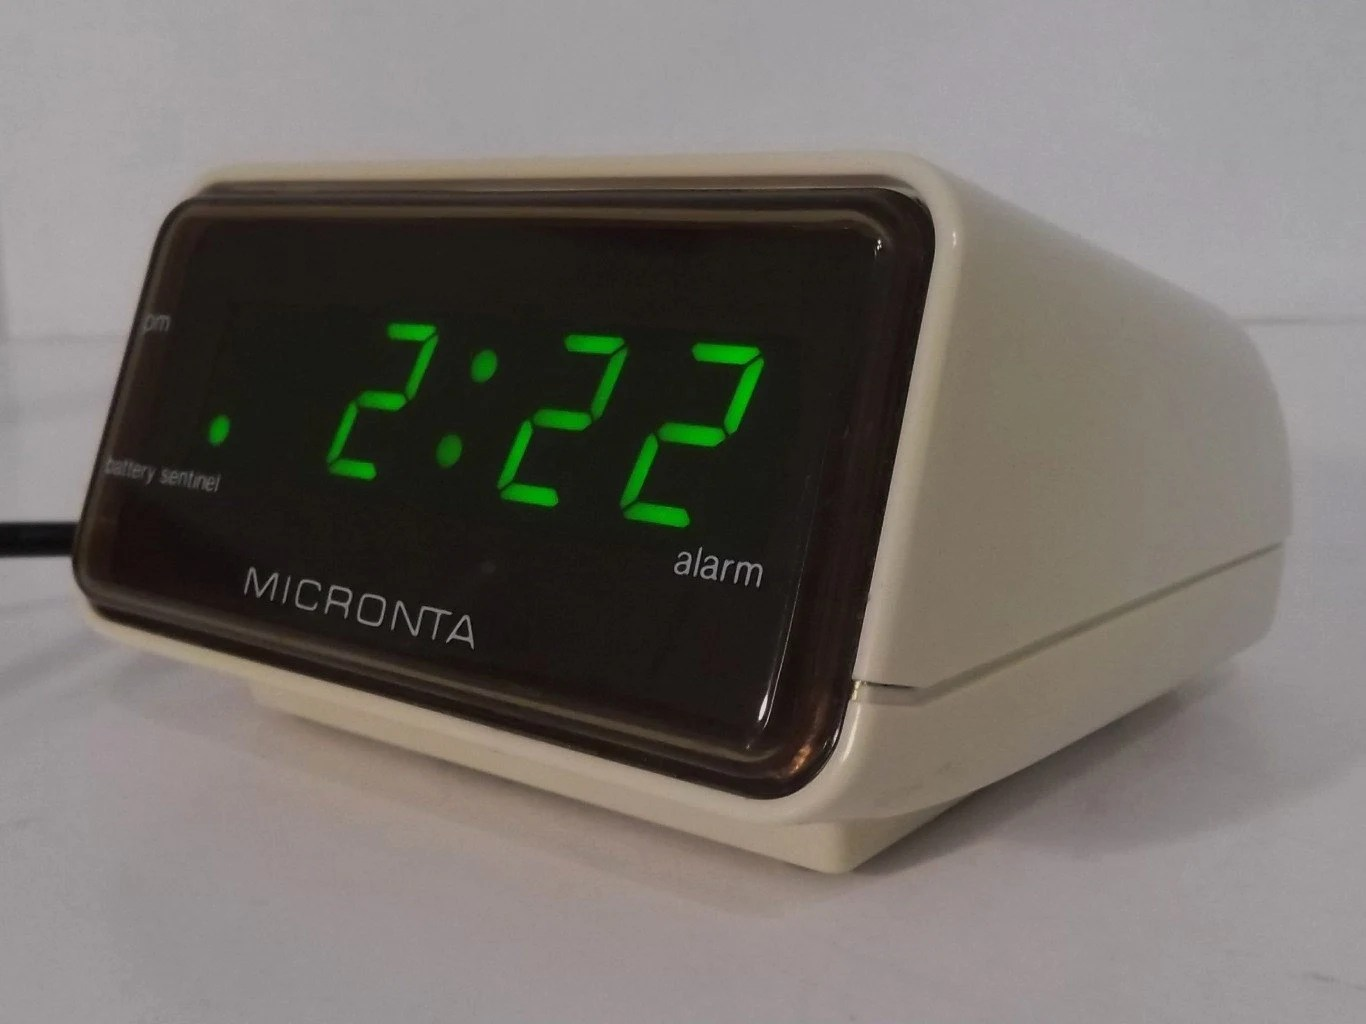 Small Led Alarm Clock Micronta Electric Led Alarm Clock Vintage Alarm Clock